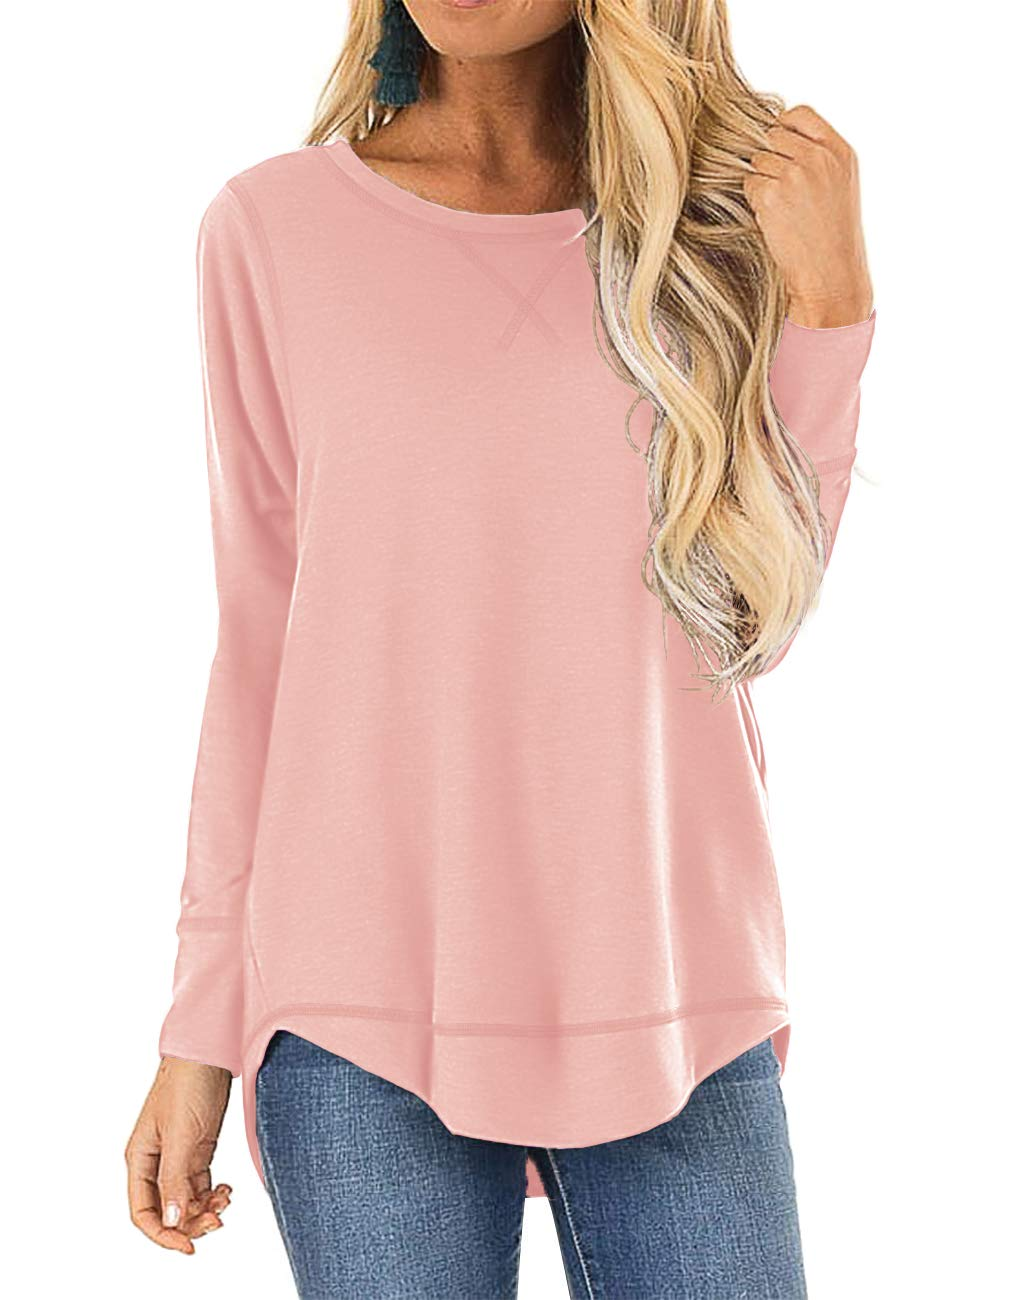 HIYIYEZI Womens O Neck Plain Side Split Loose Casual Baggy Pullover (Medium,Light Pink) by HIYIYEZI